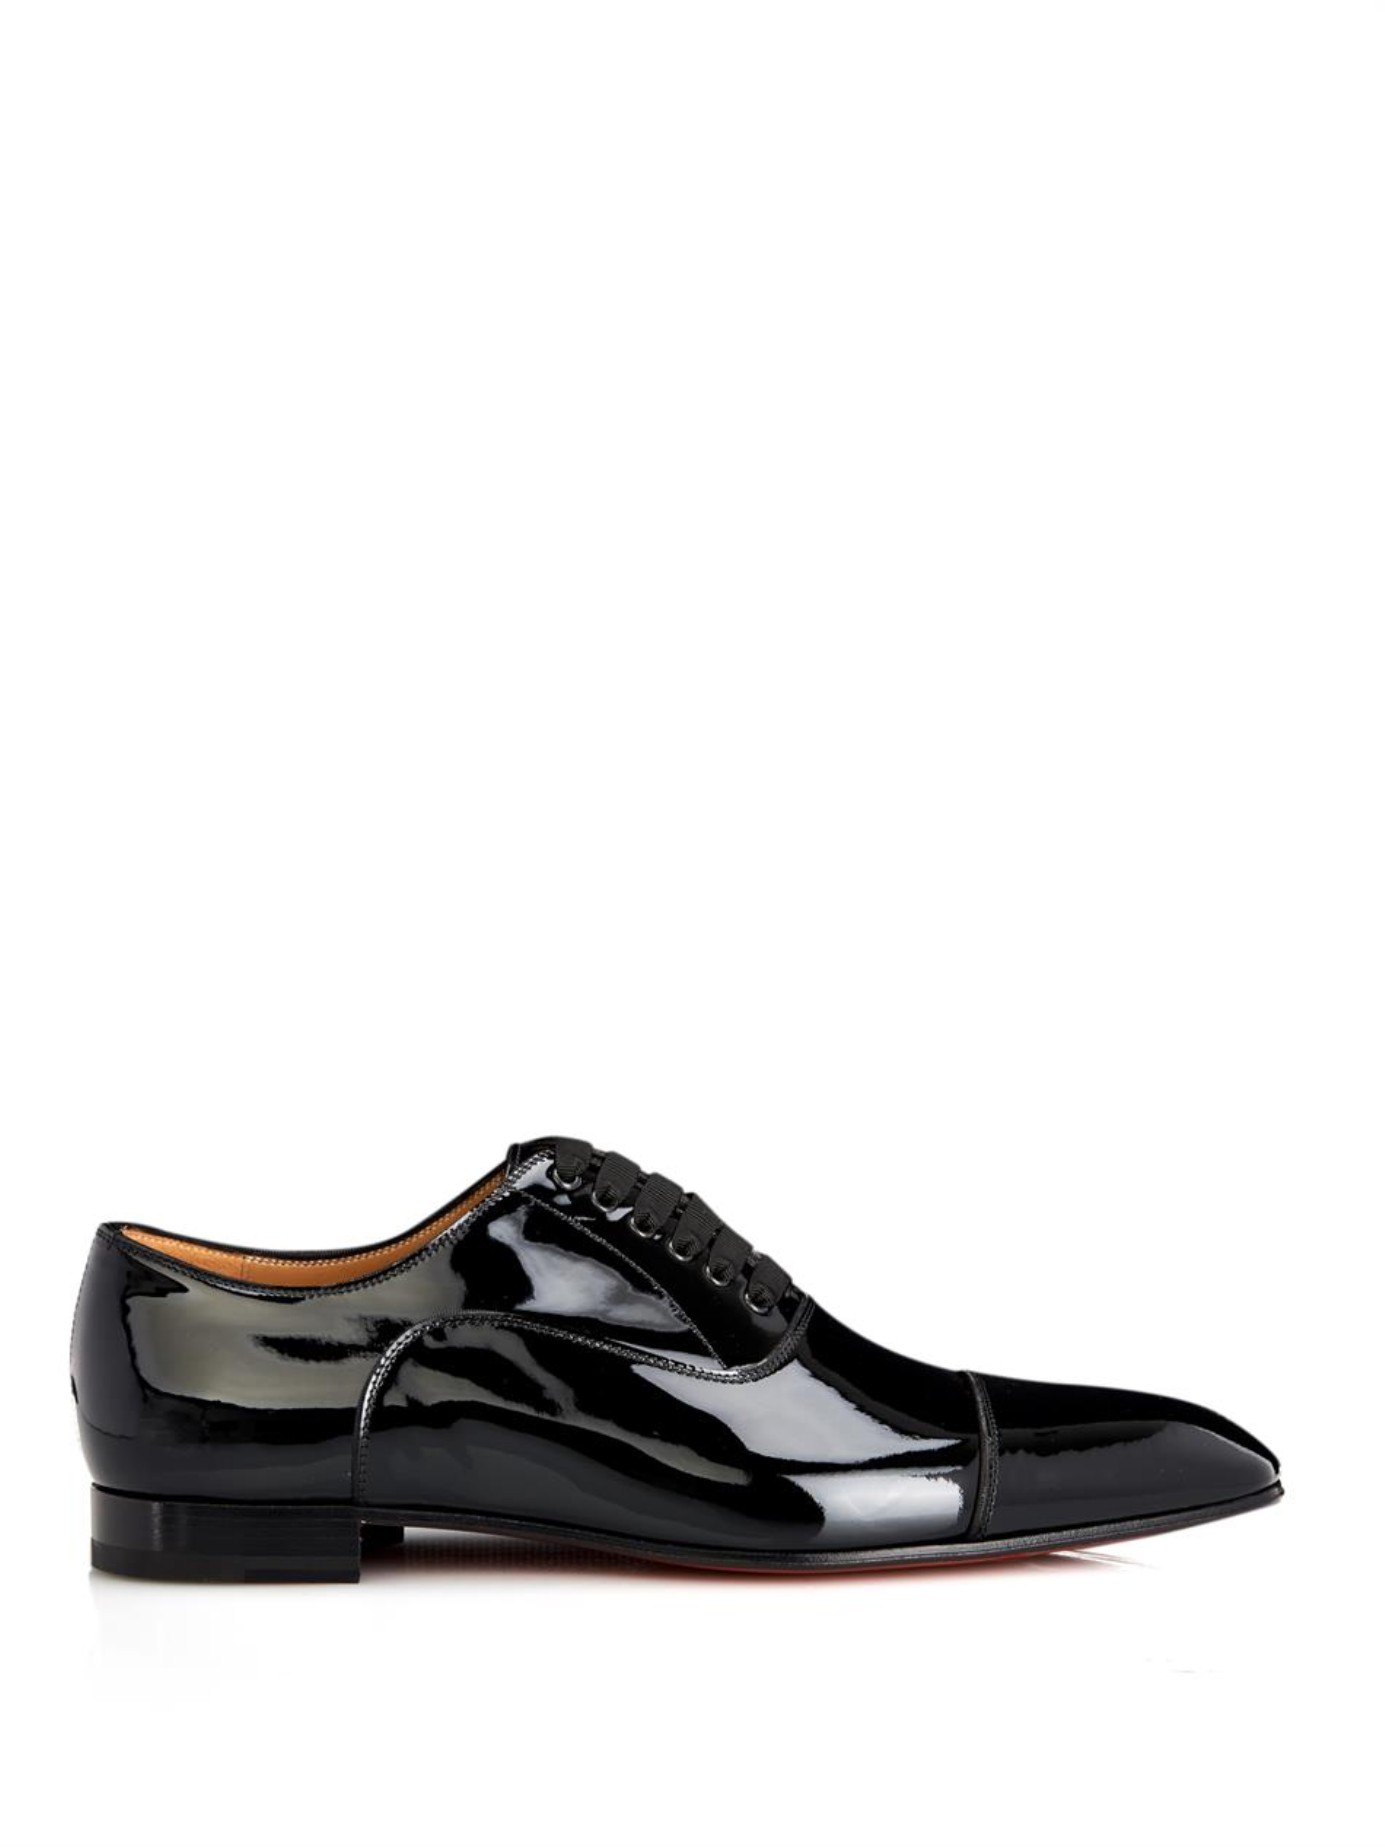 louboutin shoes fake - Christian louboutin Greggo Patent-Leather Lace-Up Shoes in Black ...